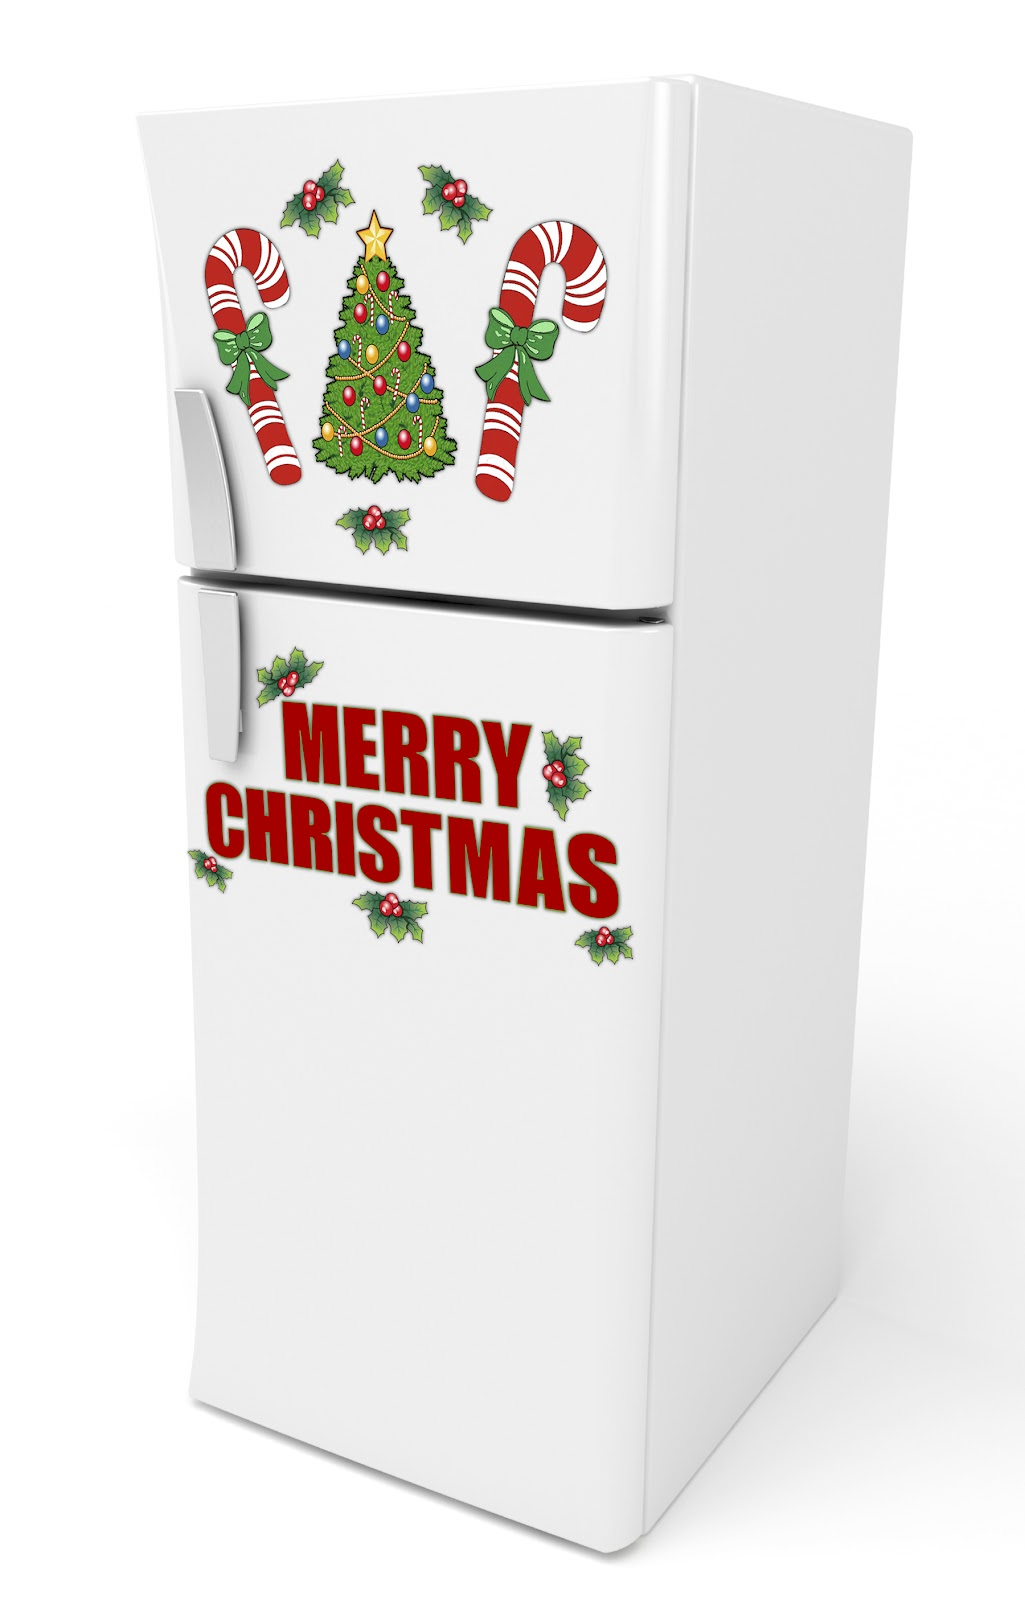 Please send us pictures of your Door Delights this Holiday season, we title=